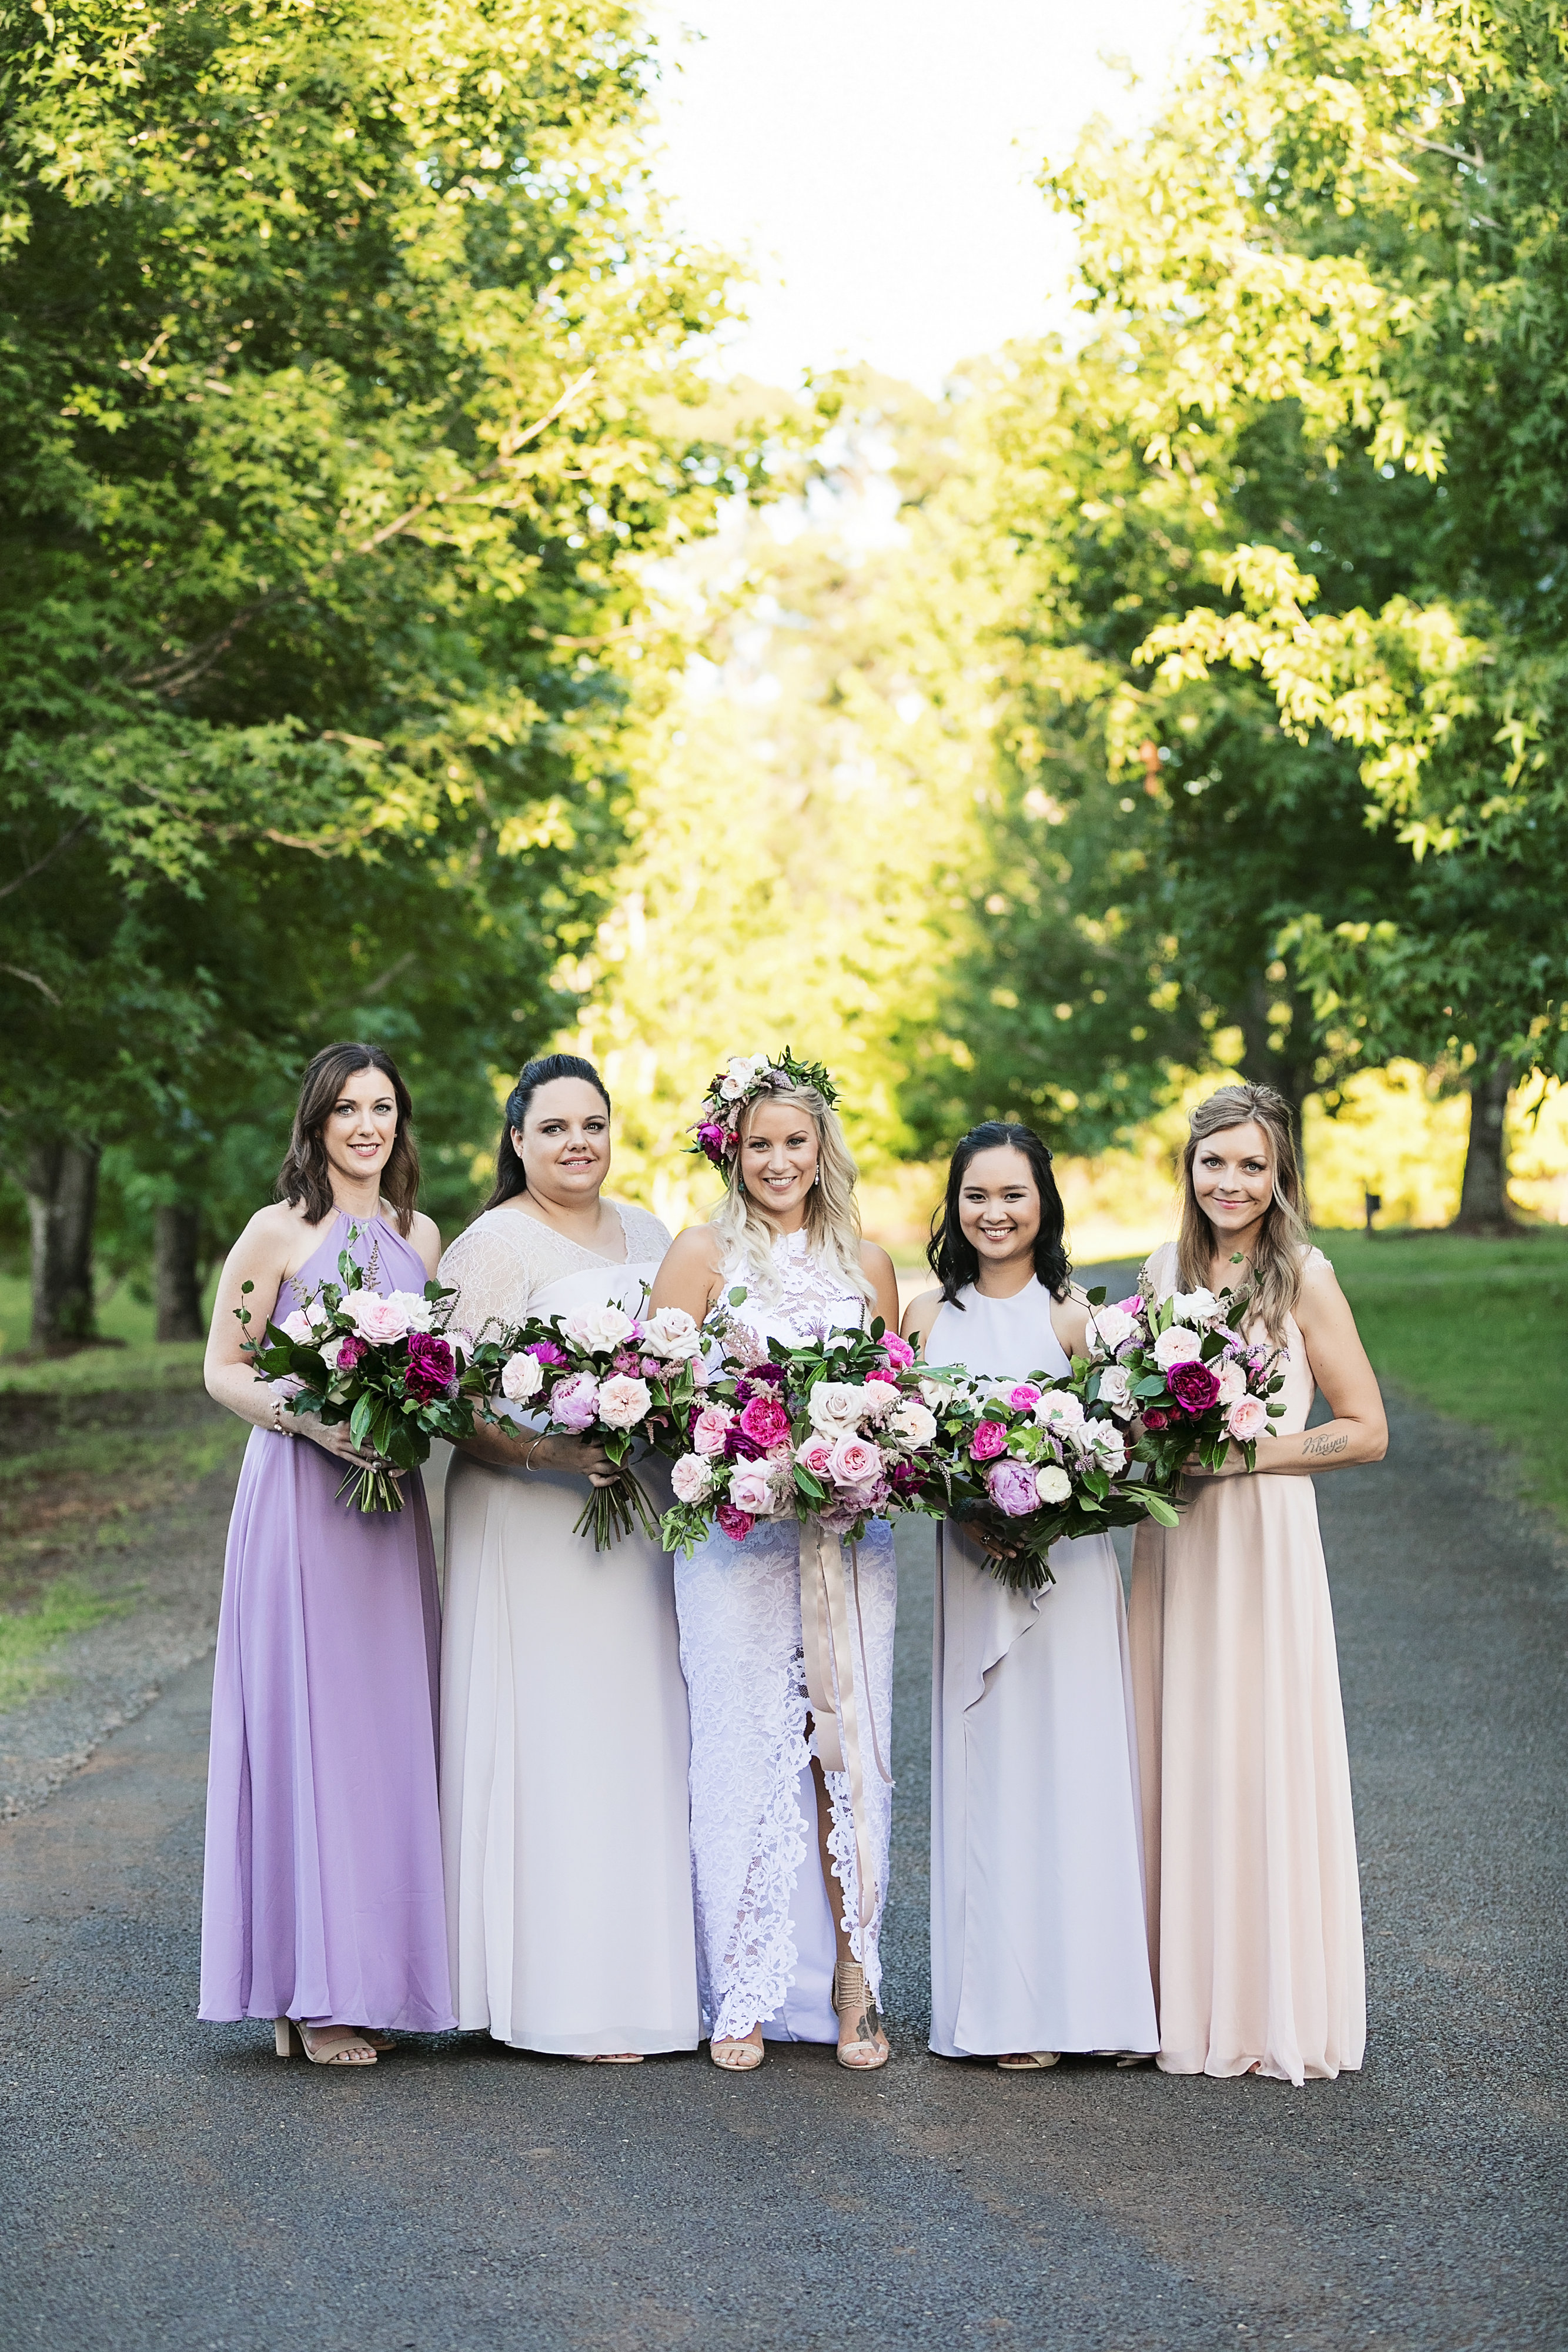 Modern pink wedding bouquets featuring roses